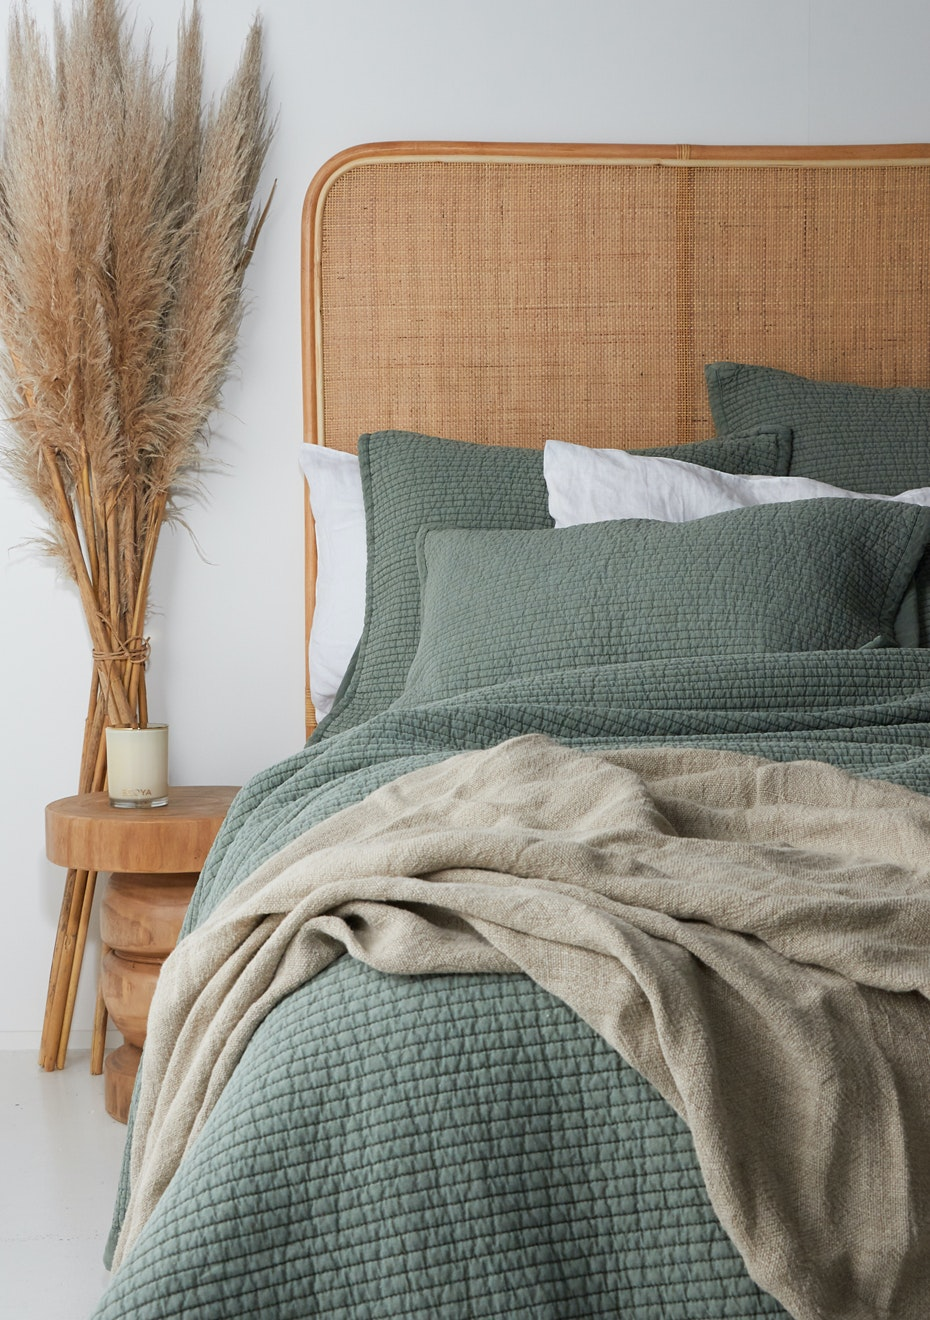 General Eclectic Rattan Headboard King Natural General Eclectic Rattan Headboards More Onceit